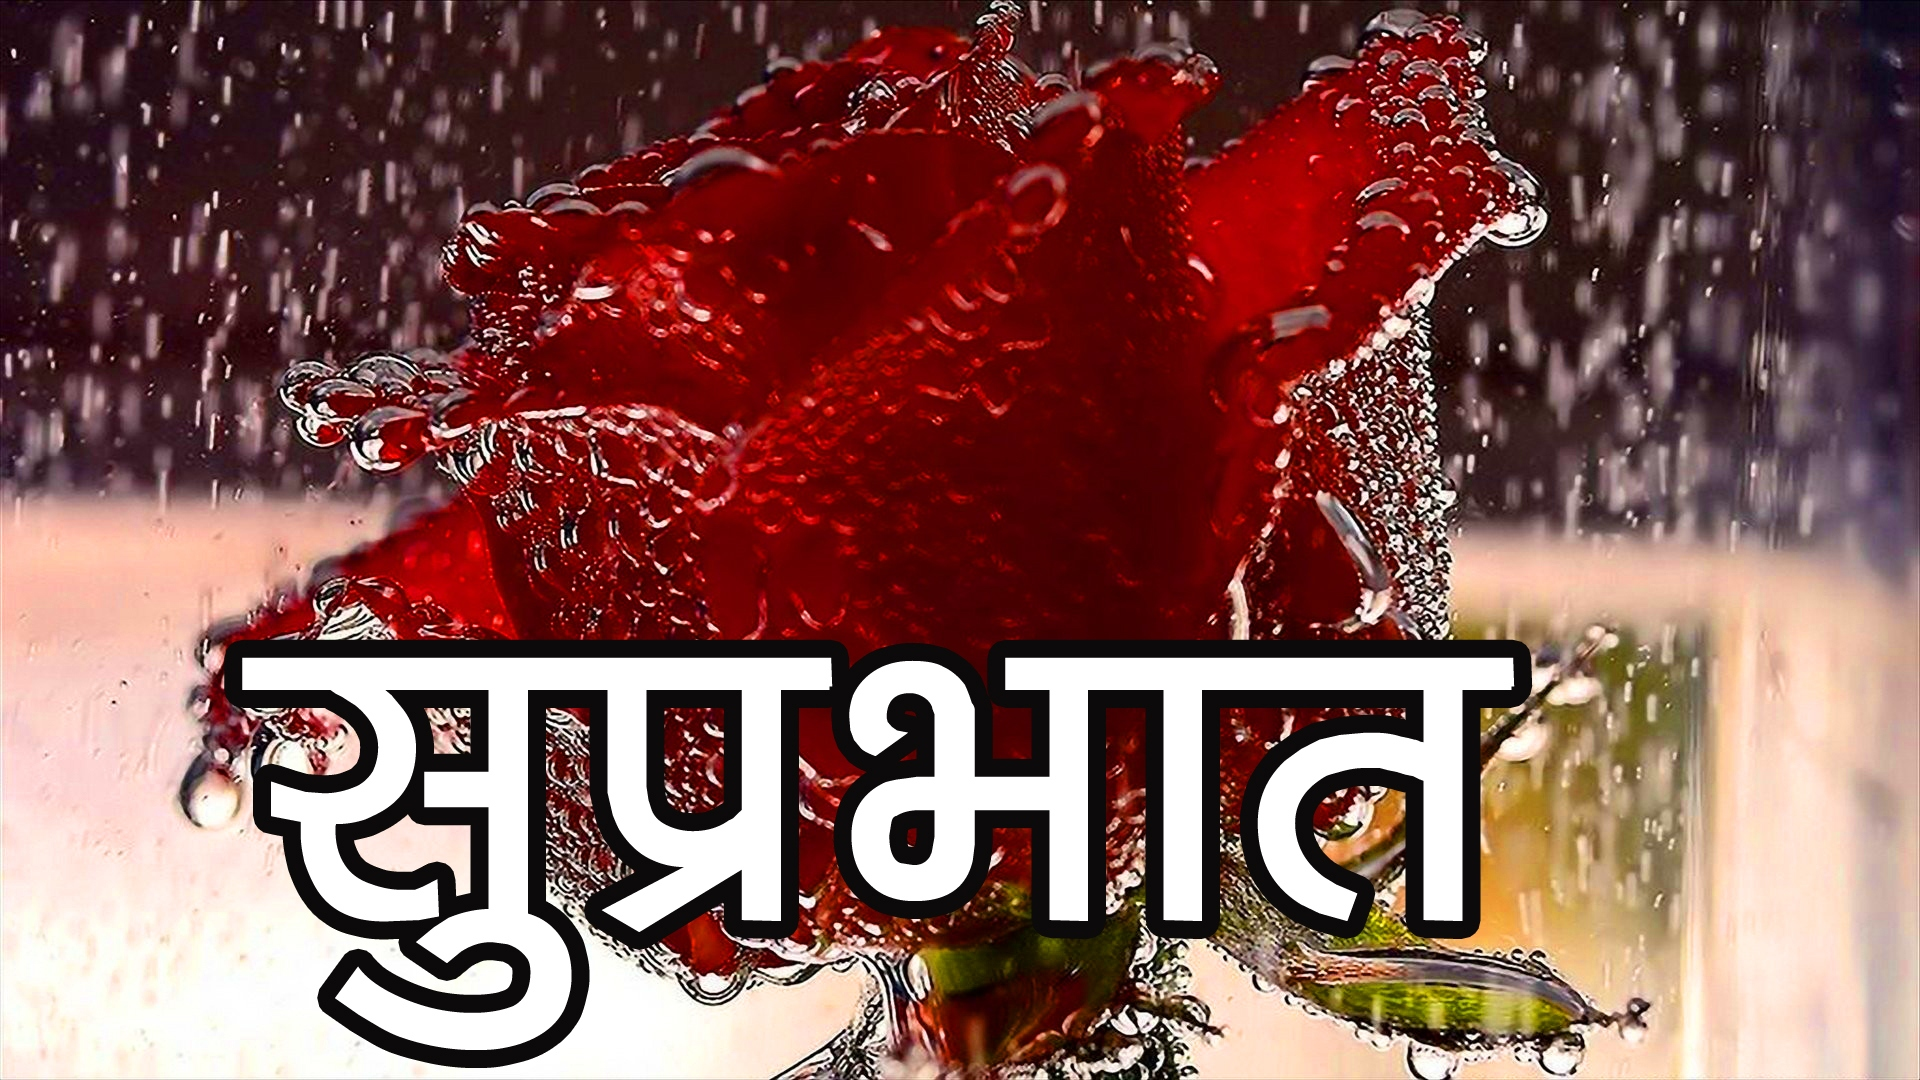 Red Rose Suprabhat Images 1 1